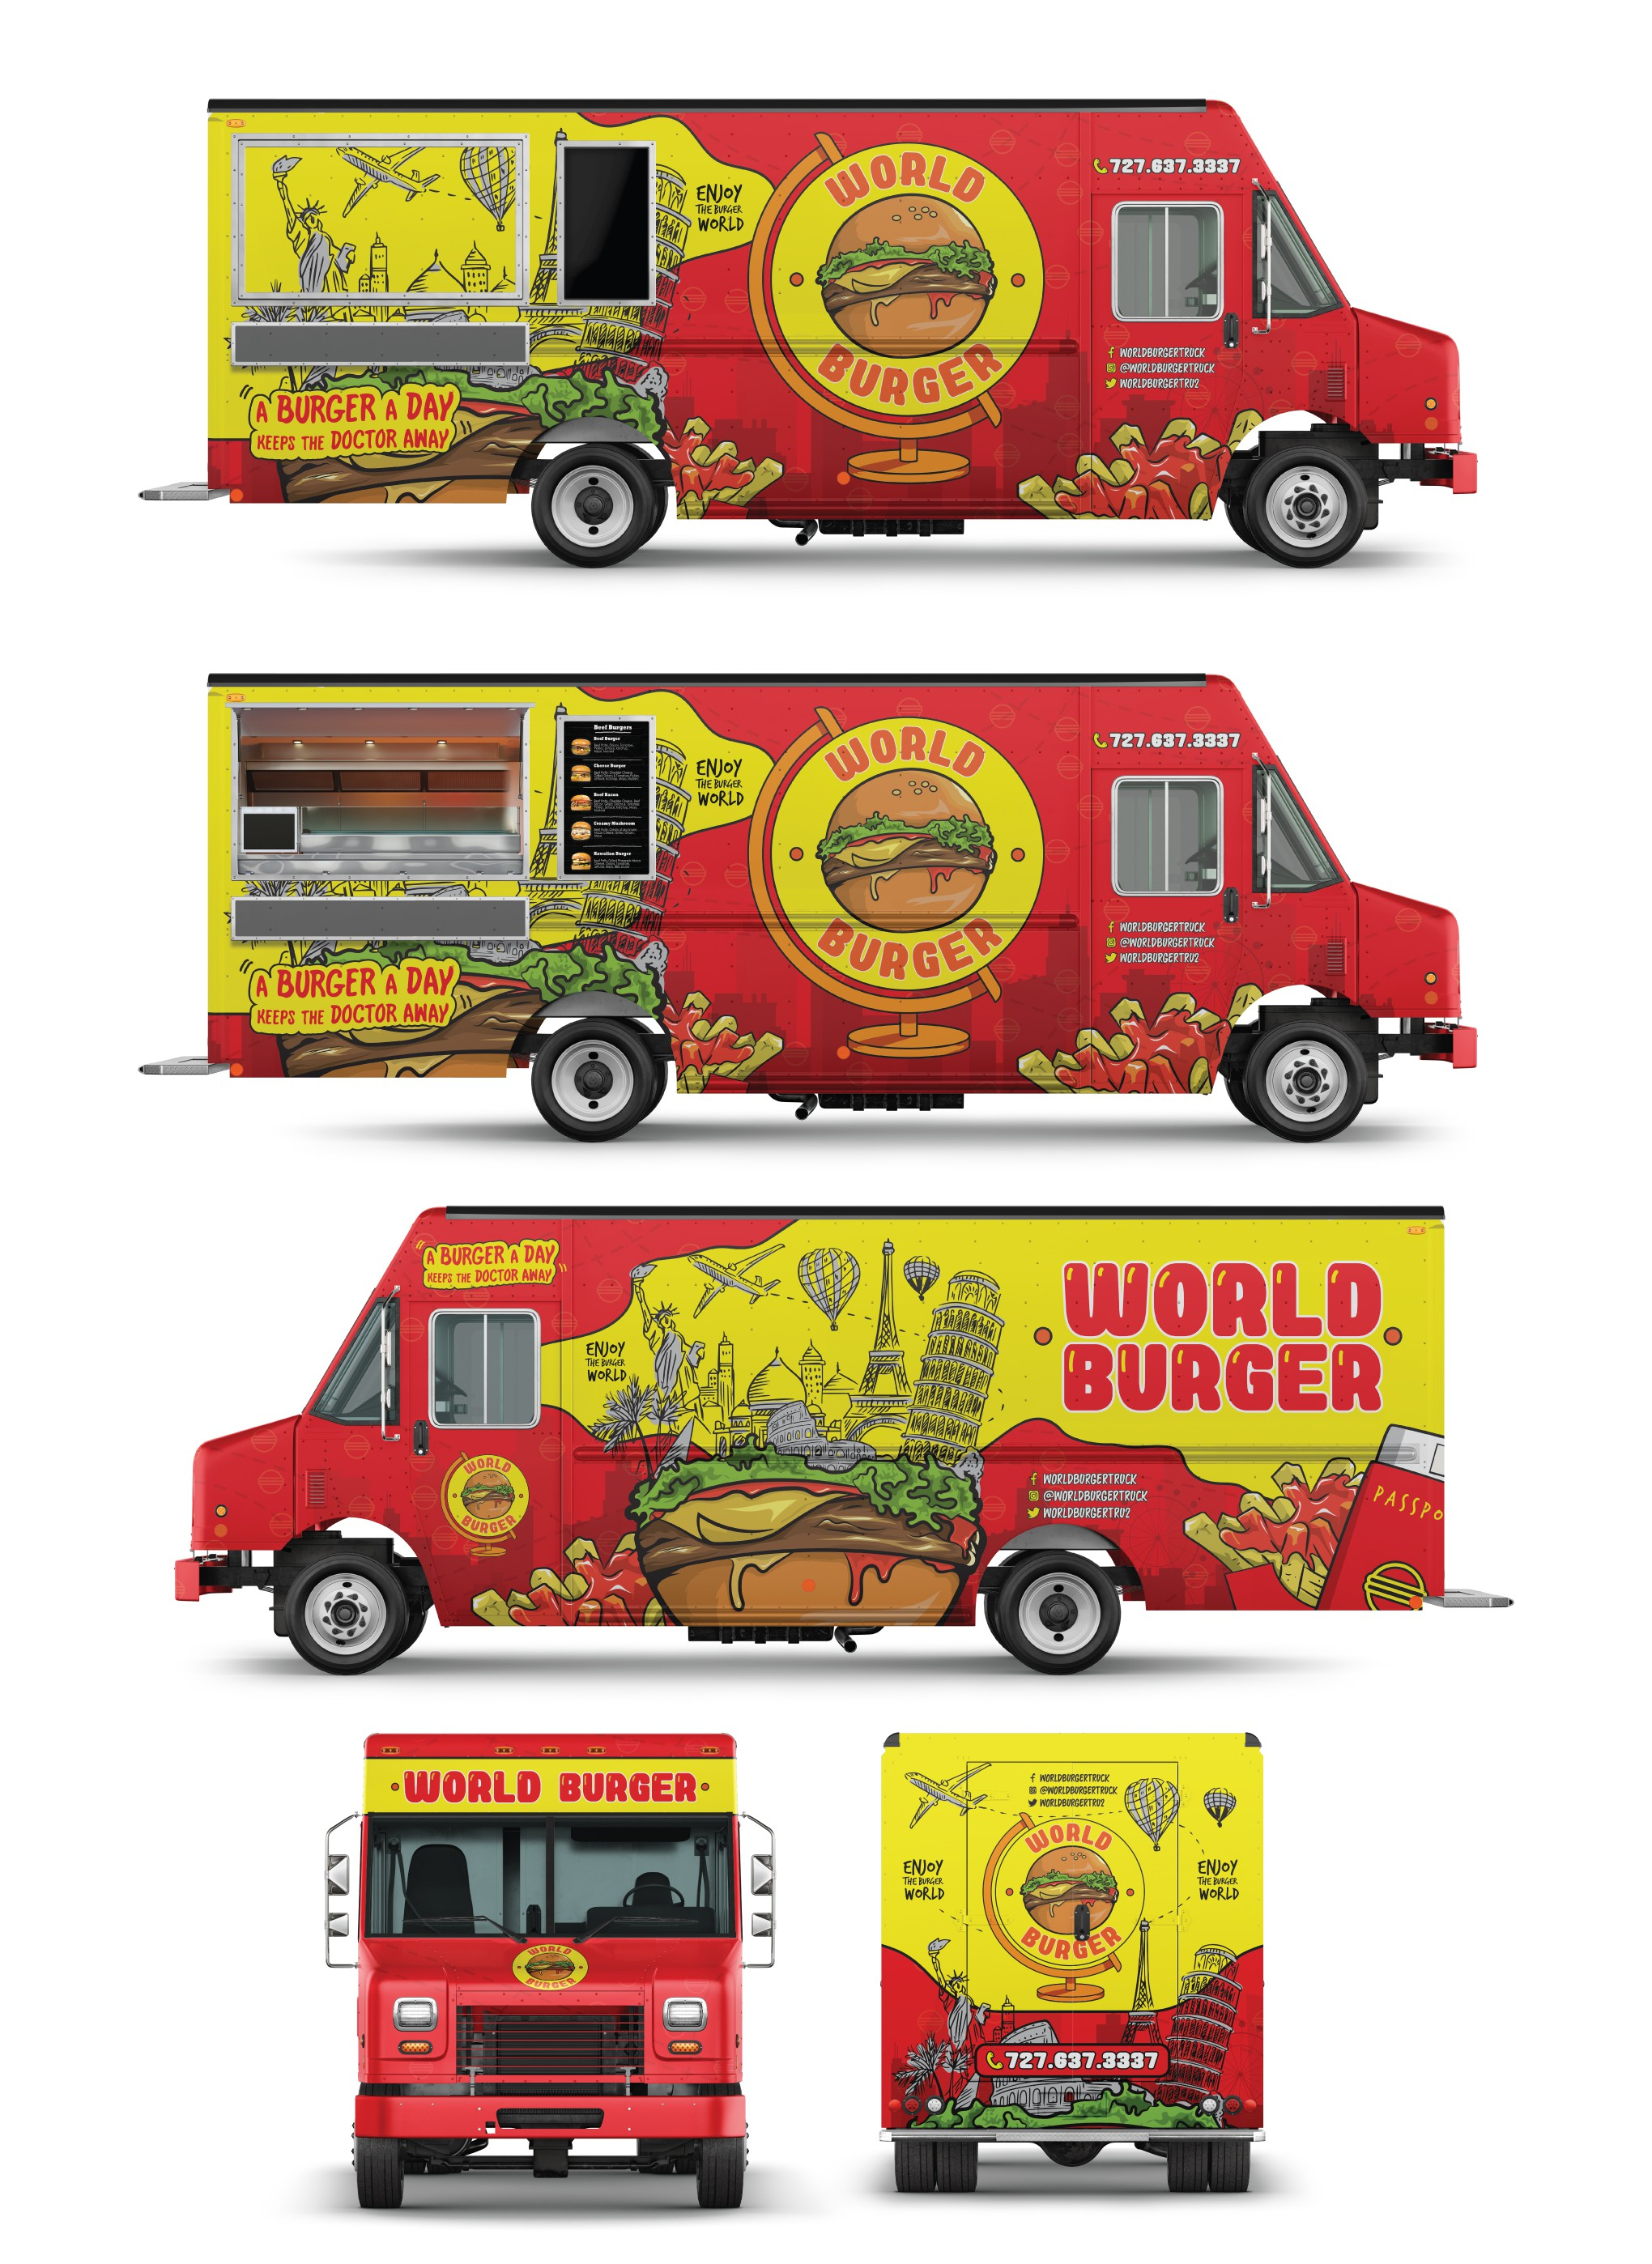 World Burger Food Truck Wrapping